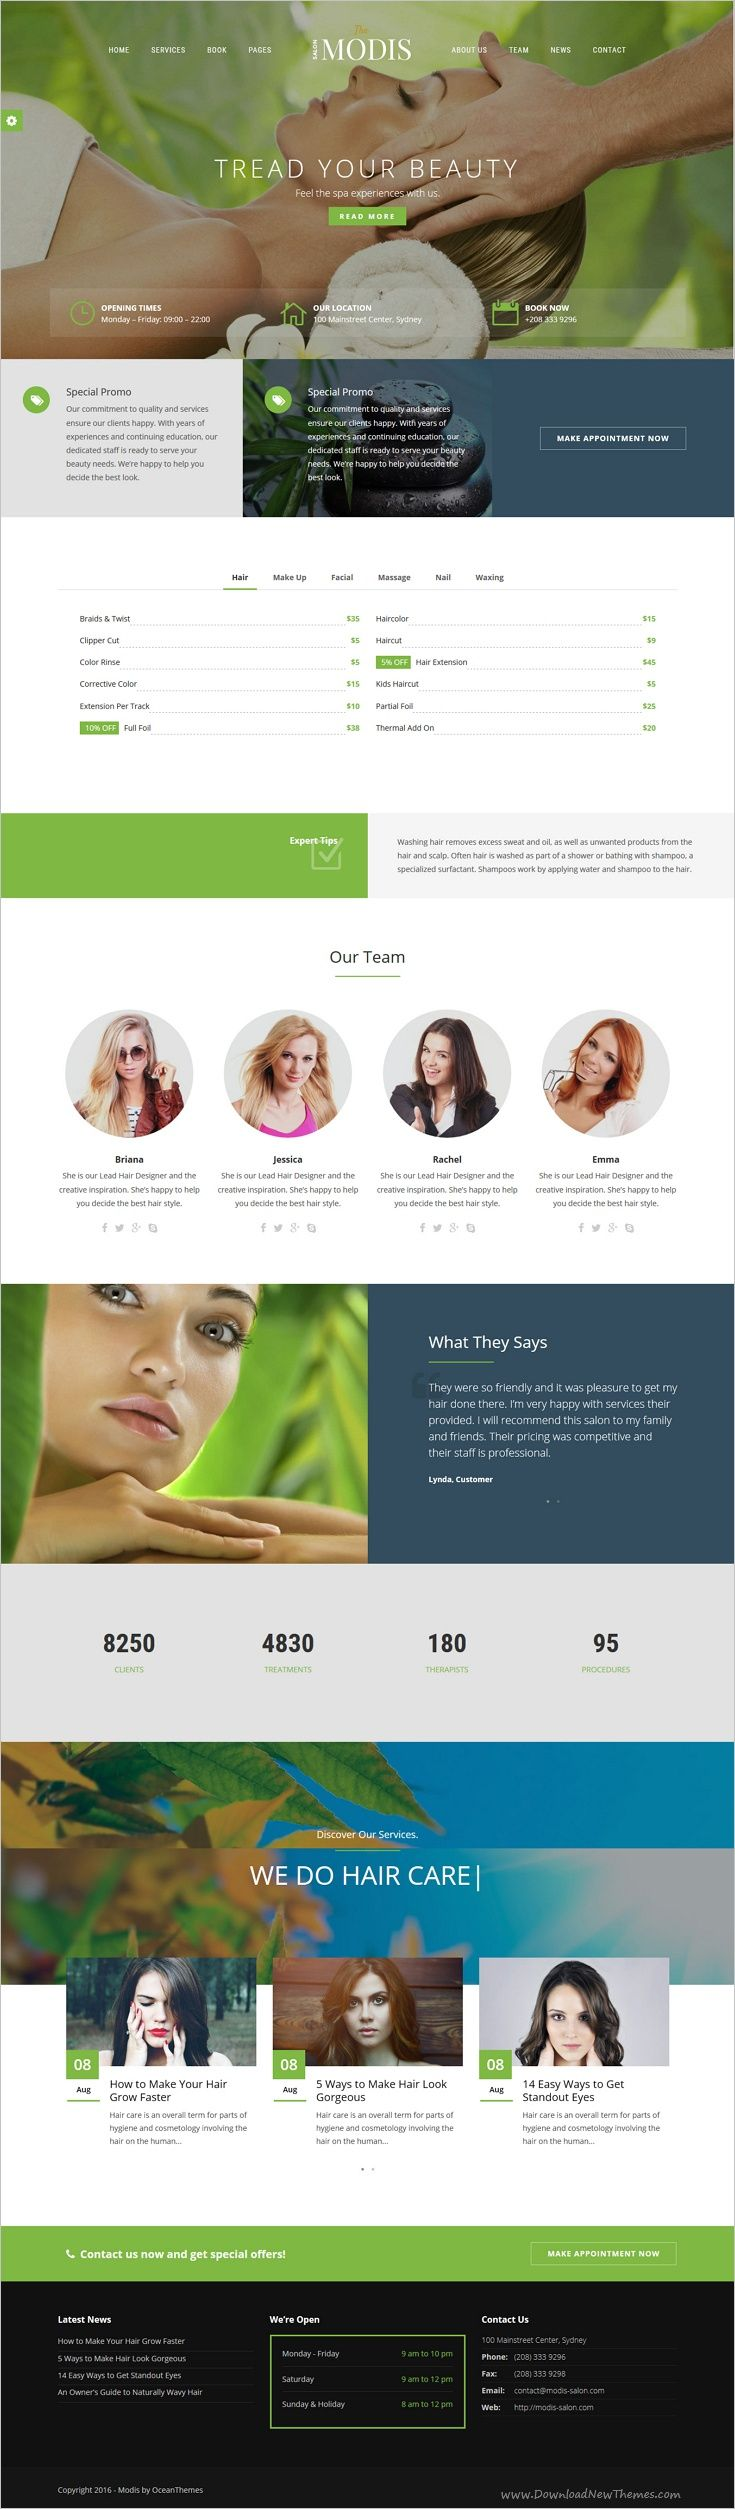 Modis #Salon & #Barber #WordPress Theme is created for anyone looking to start their on amazing beauty or healthcare website with 10+ homepage layouts download now➩ https://themeforest.net/item/modis-salon-barber-wordpress-theme/18098333?ref=Datasata